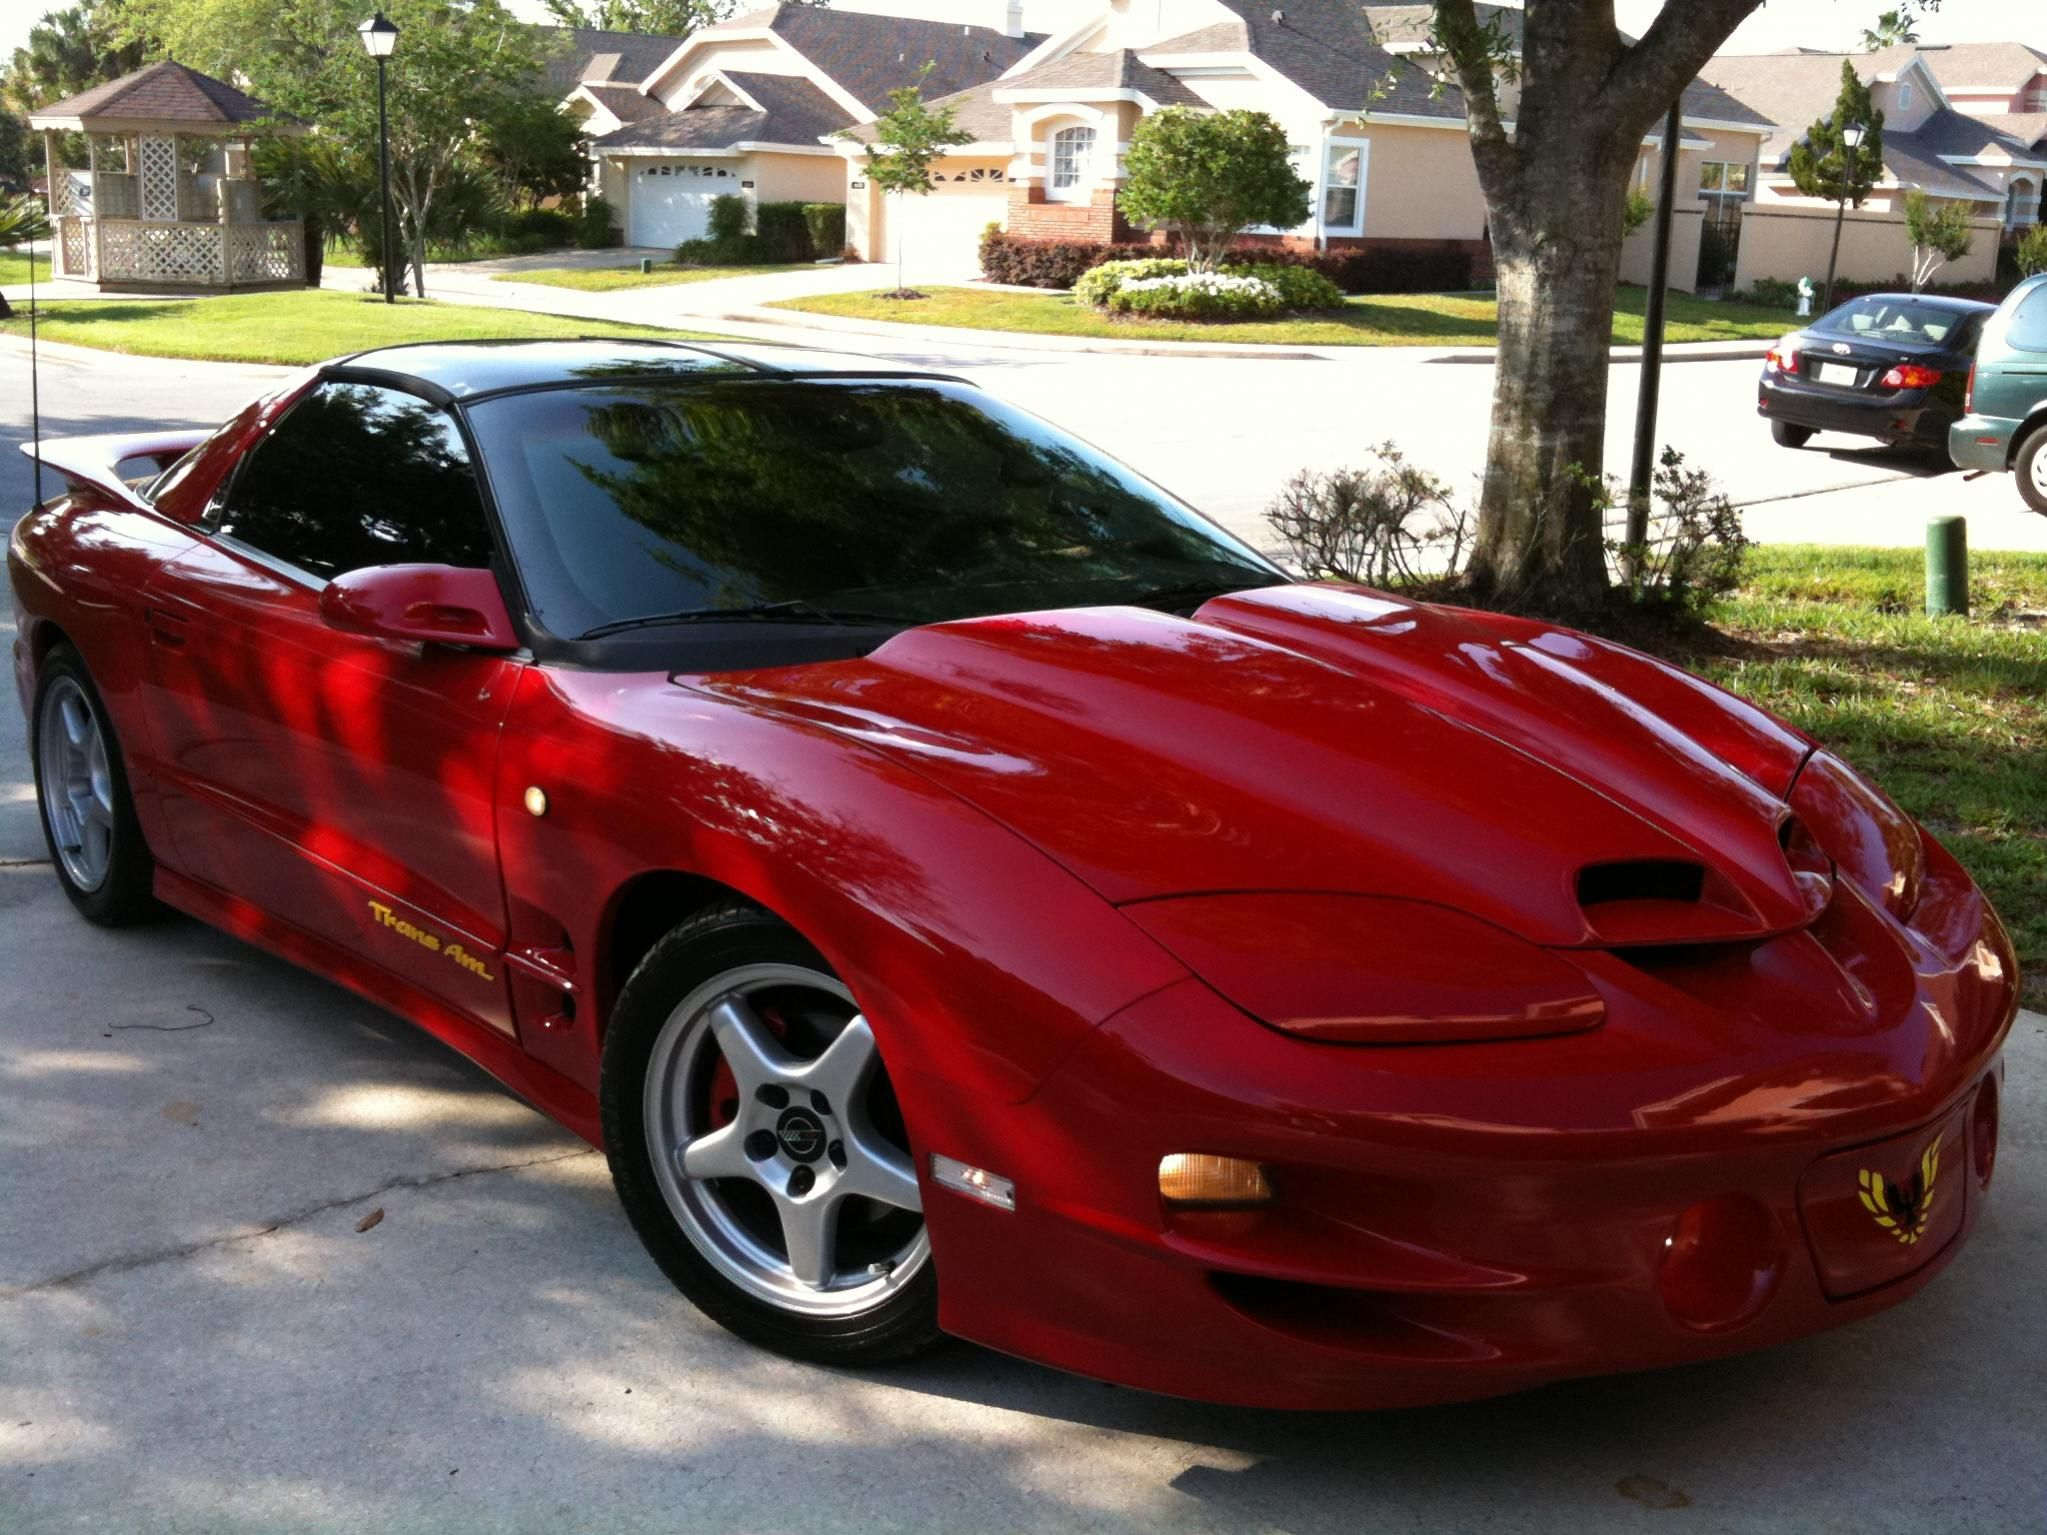 1998 pontiac trans am ws6 muscle cars pontiac trans. Black Bedroom Furniture Sets. Home Design Ideas